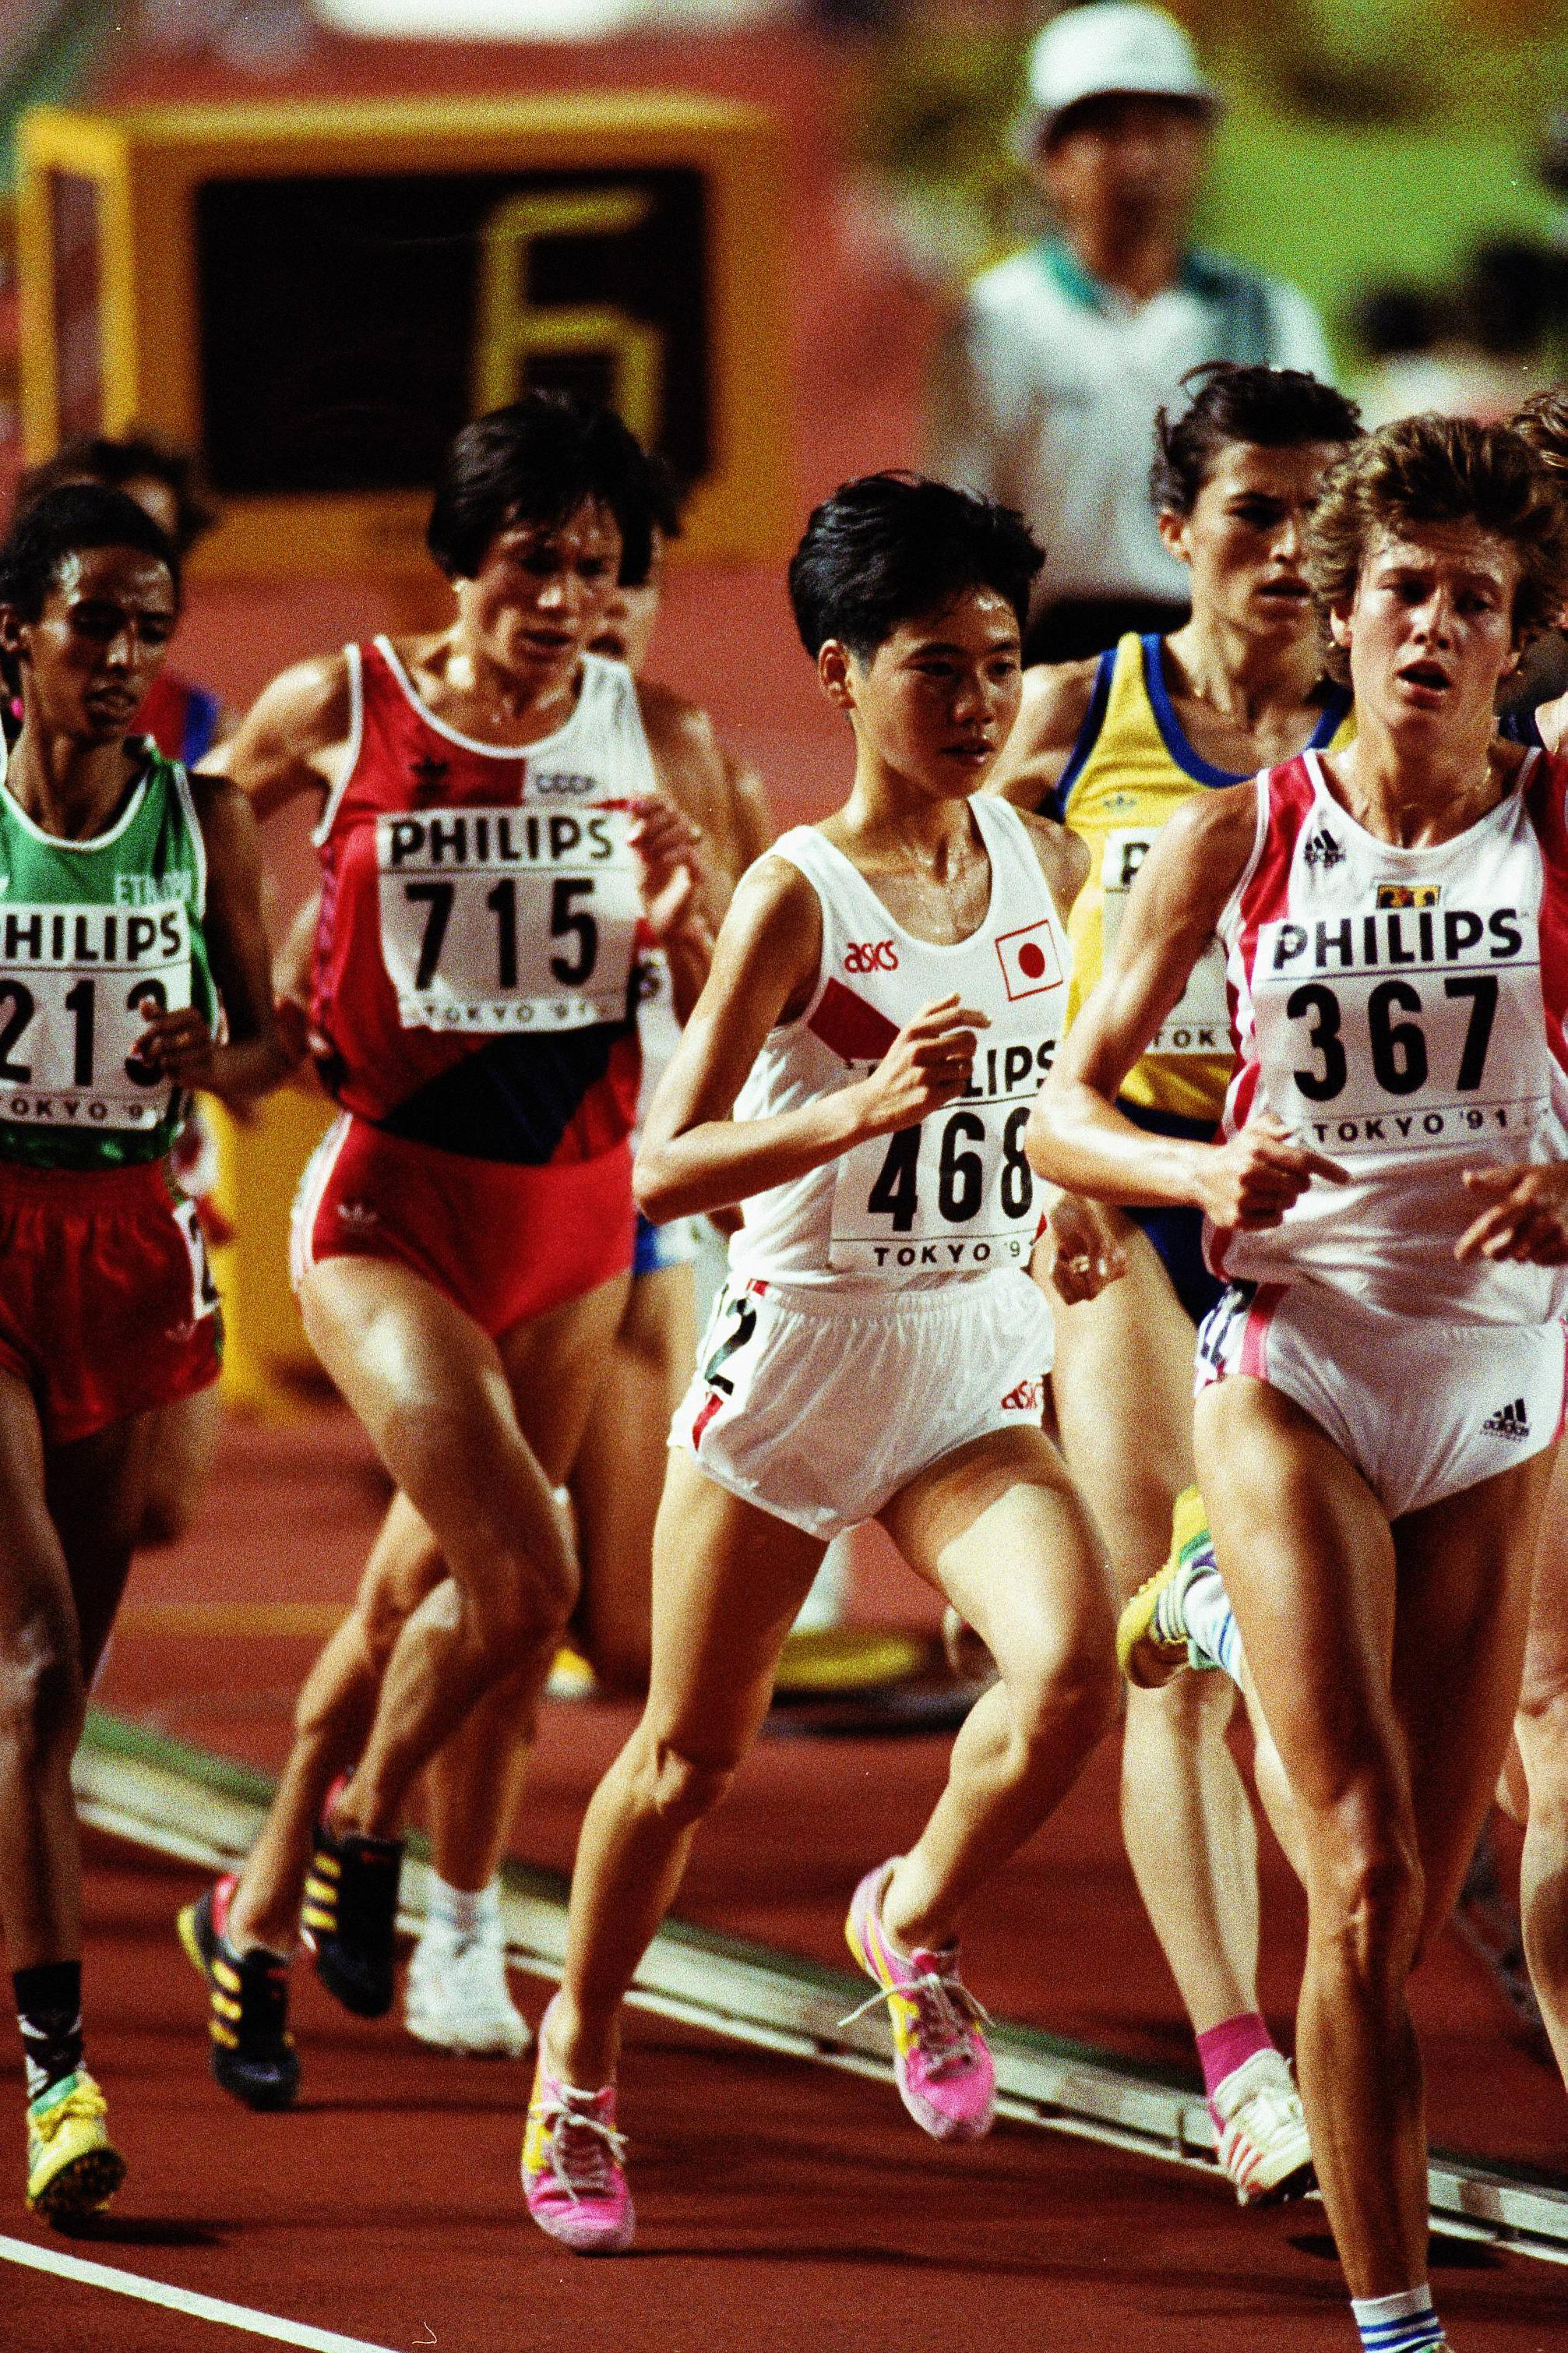 Maki competed at the 1992 Barcelona games and the 1996 Atlanta games